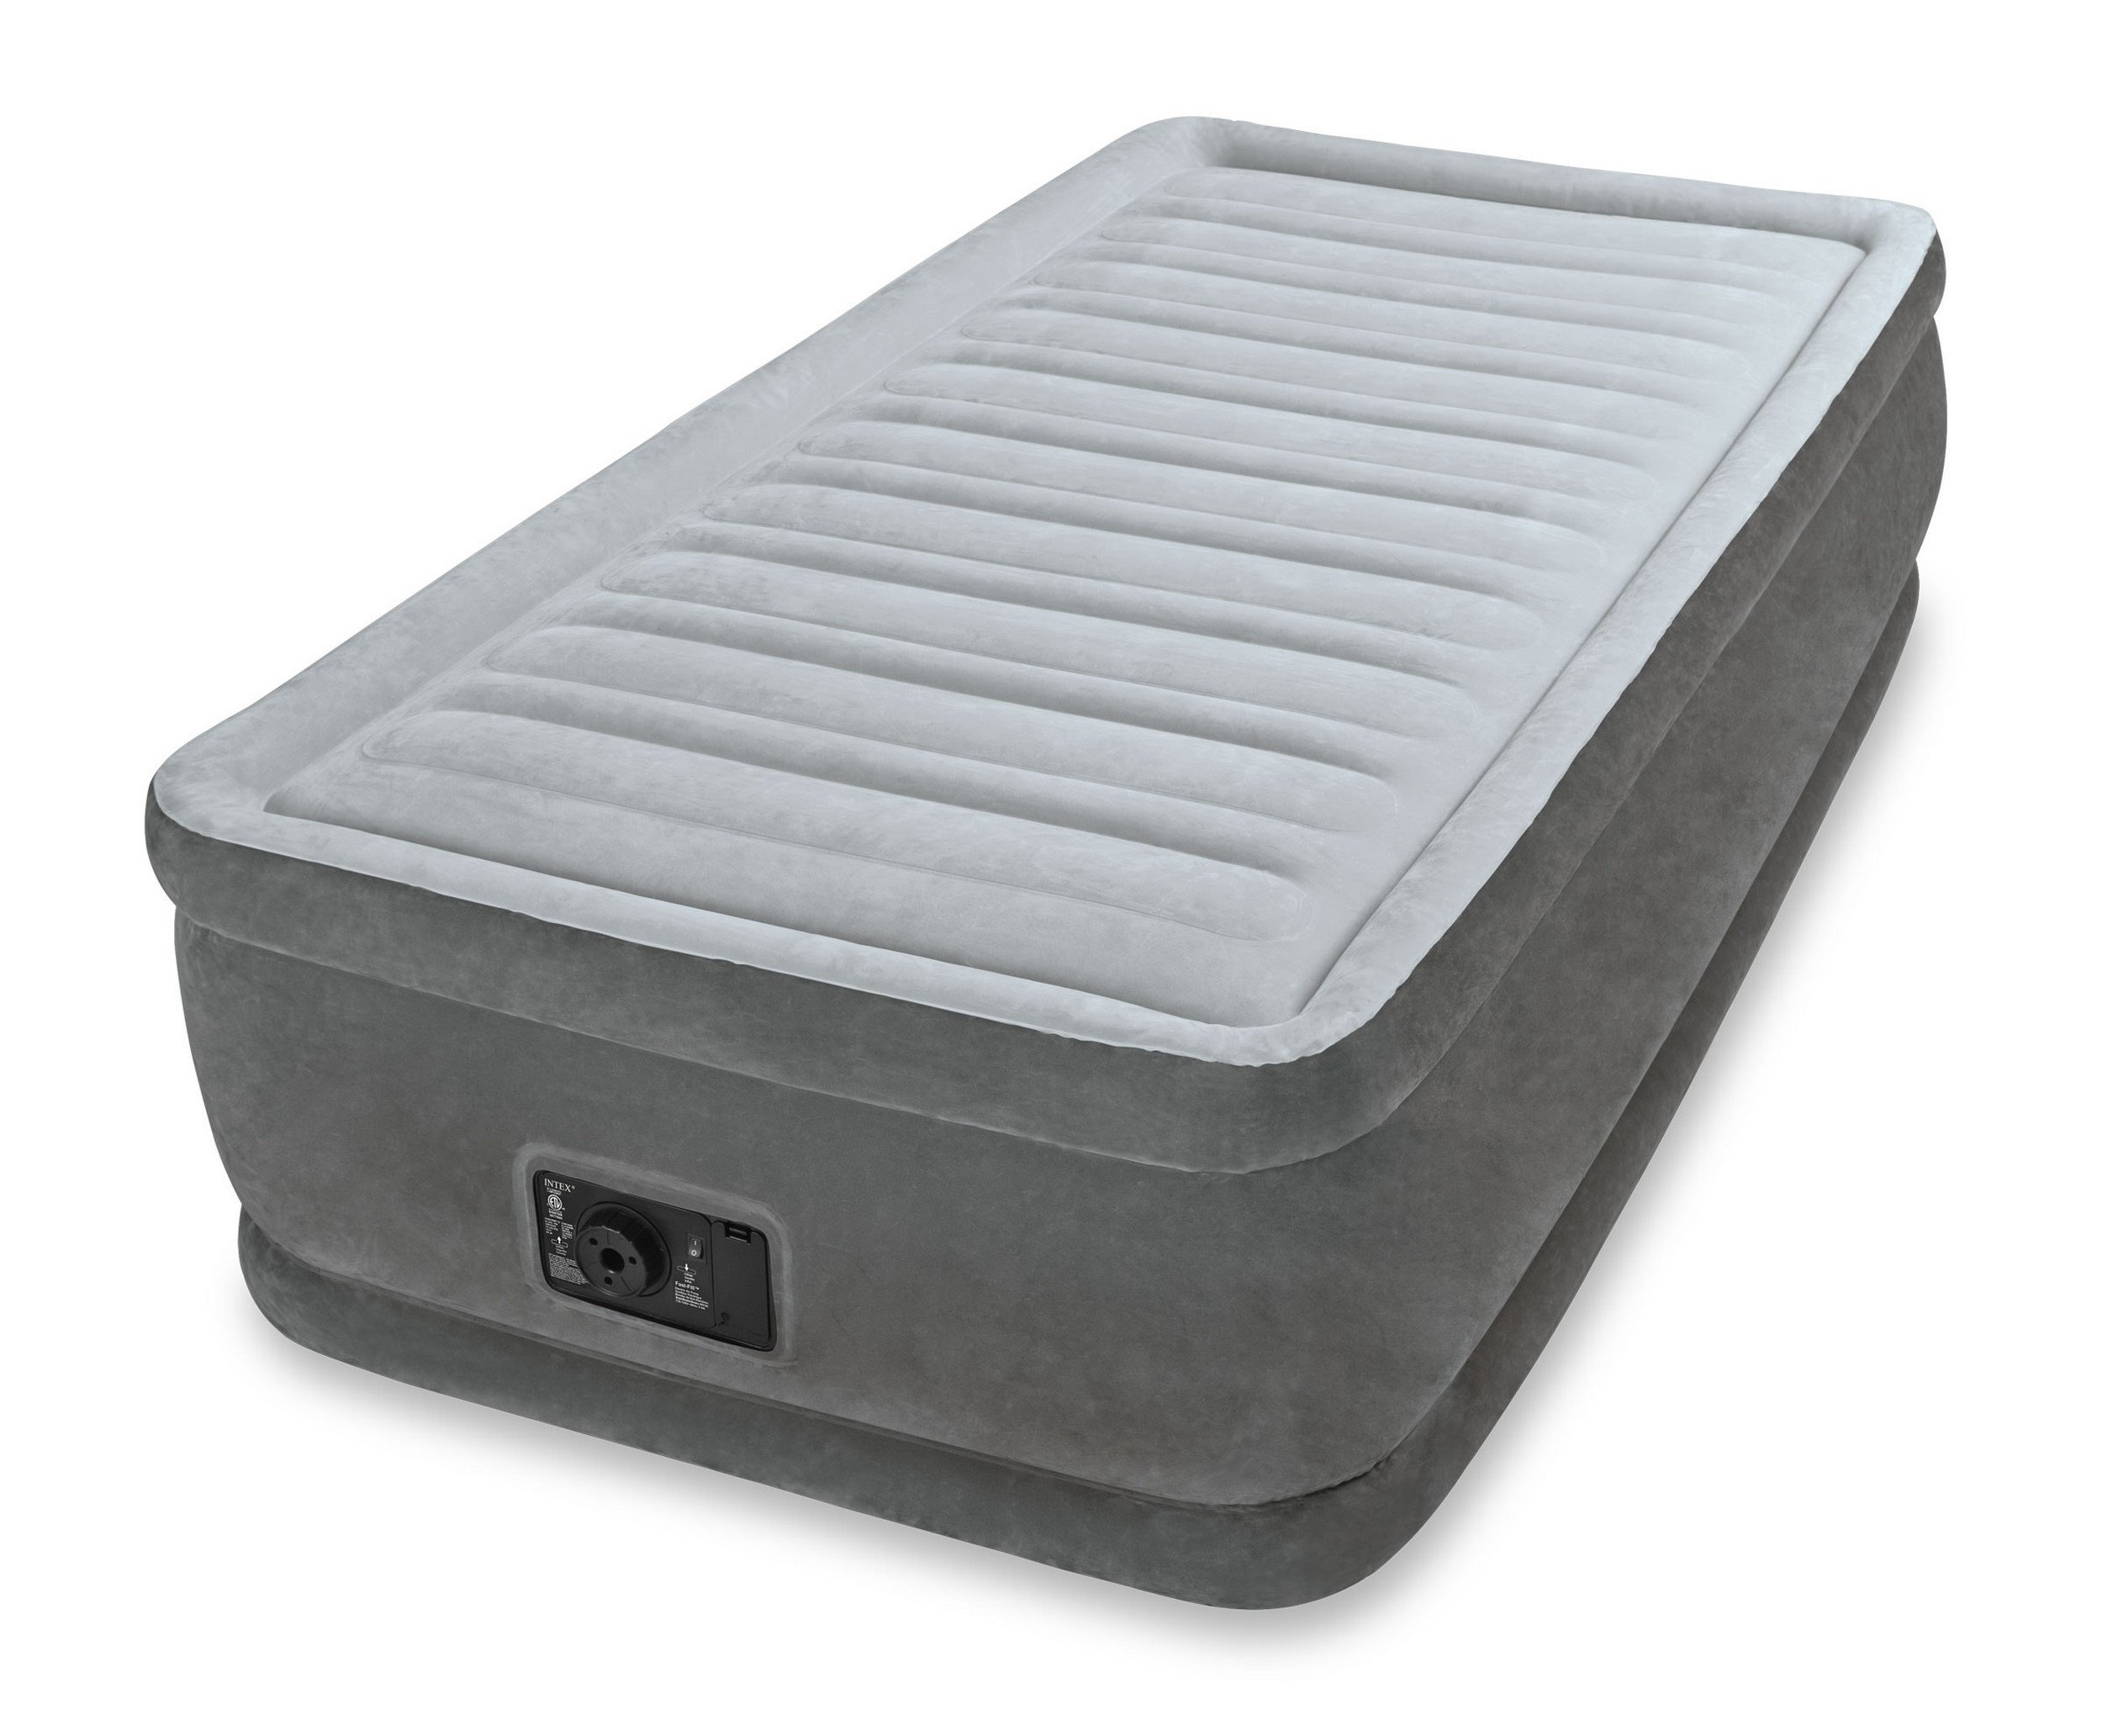 twin size air bed mattress 18 with built in electric pump. Black Bedroom Furniture Sets. Home Design Ideas